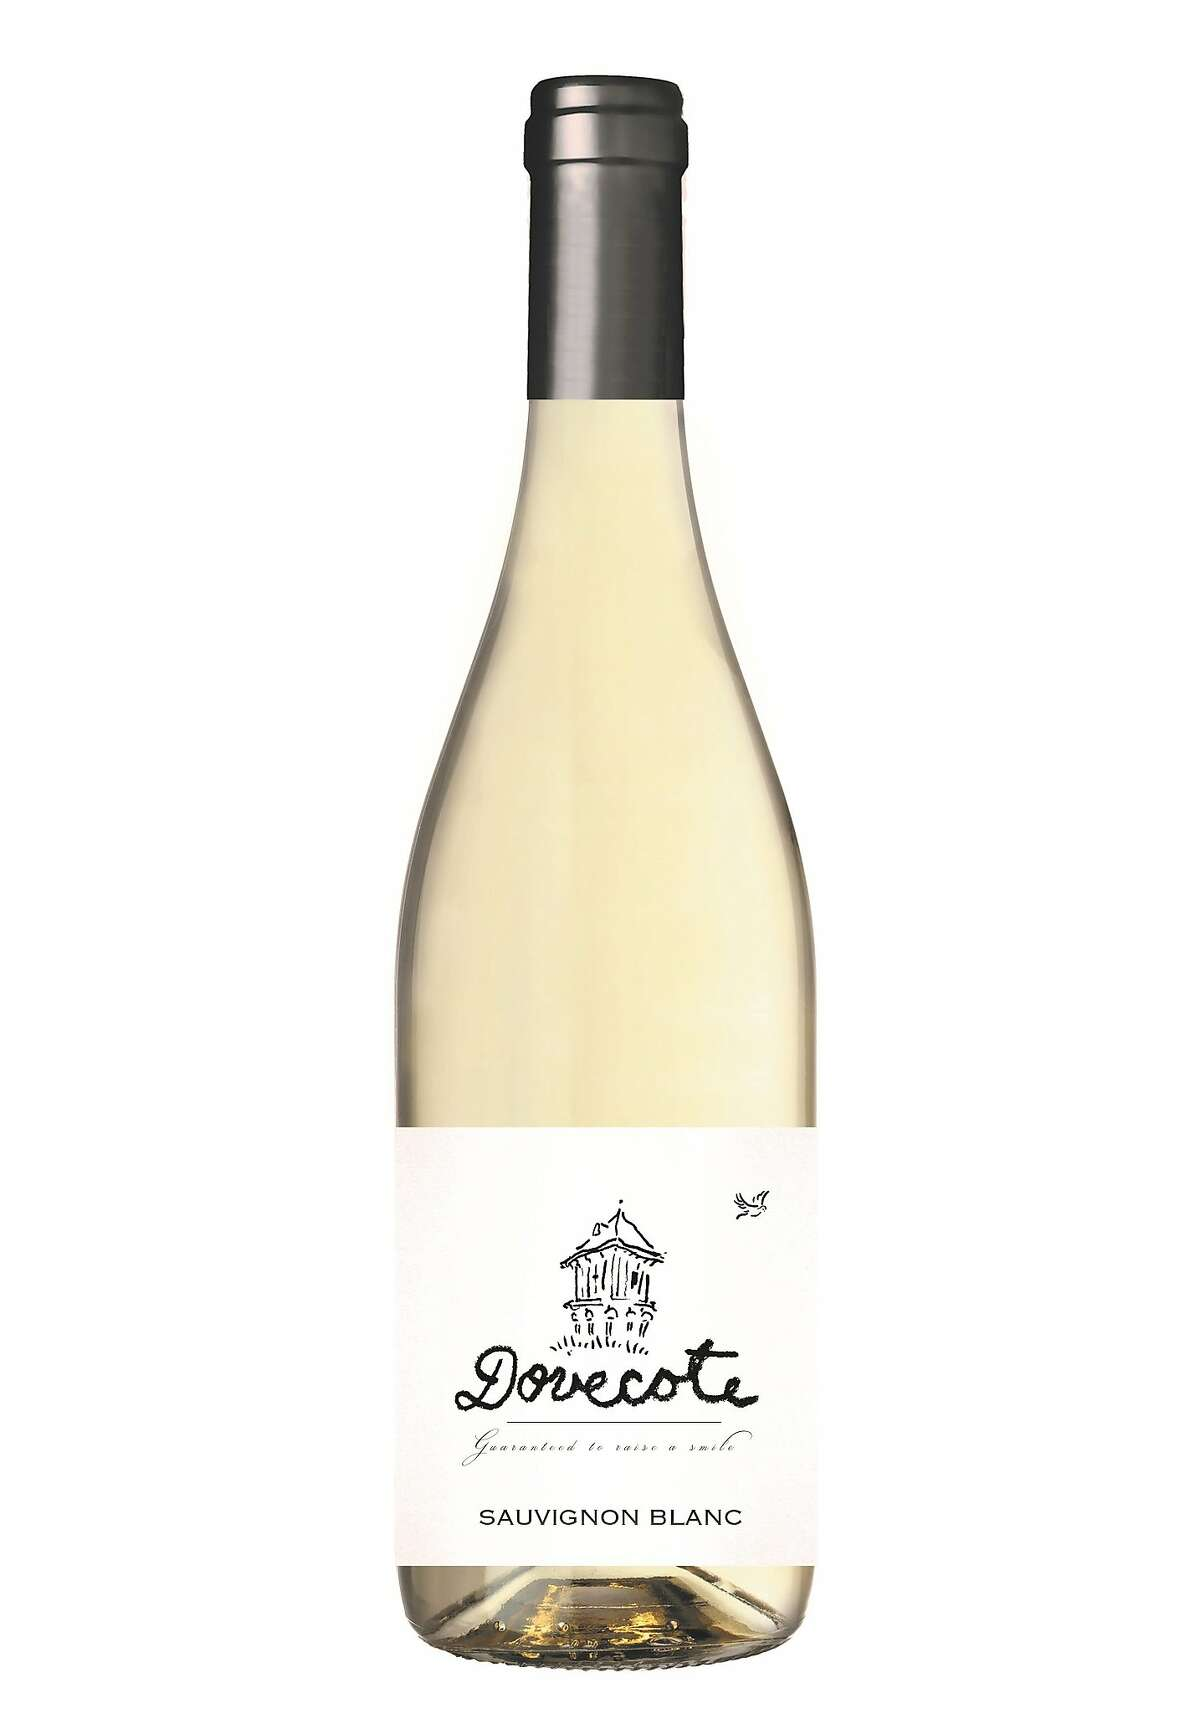 Dovecote C�tes de Gascogne Sauvignon Blanc, a wine made by Steve Lawrence and Diana Lucz. The couple left their jobs in Napa Valley when they bought a vineyard and winery in Bordeaux, France.